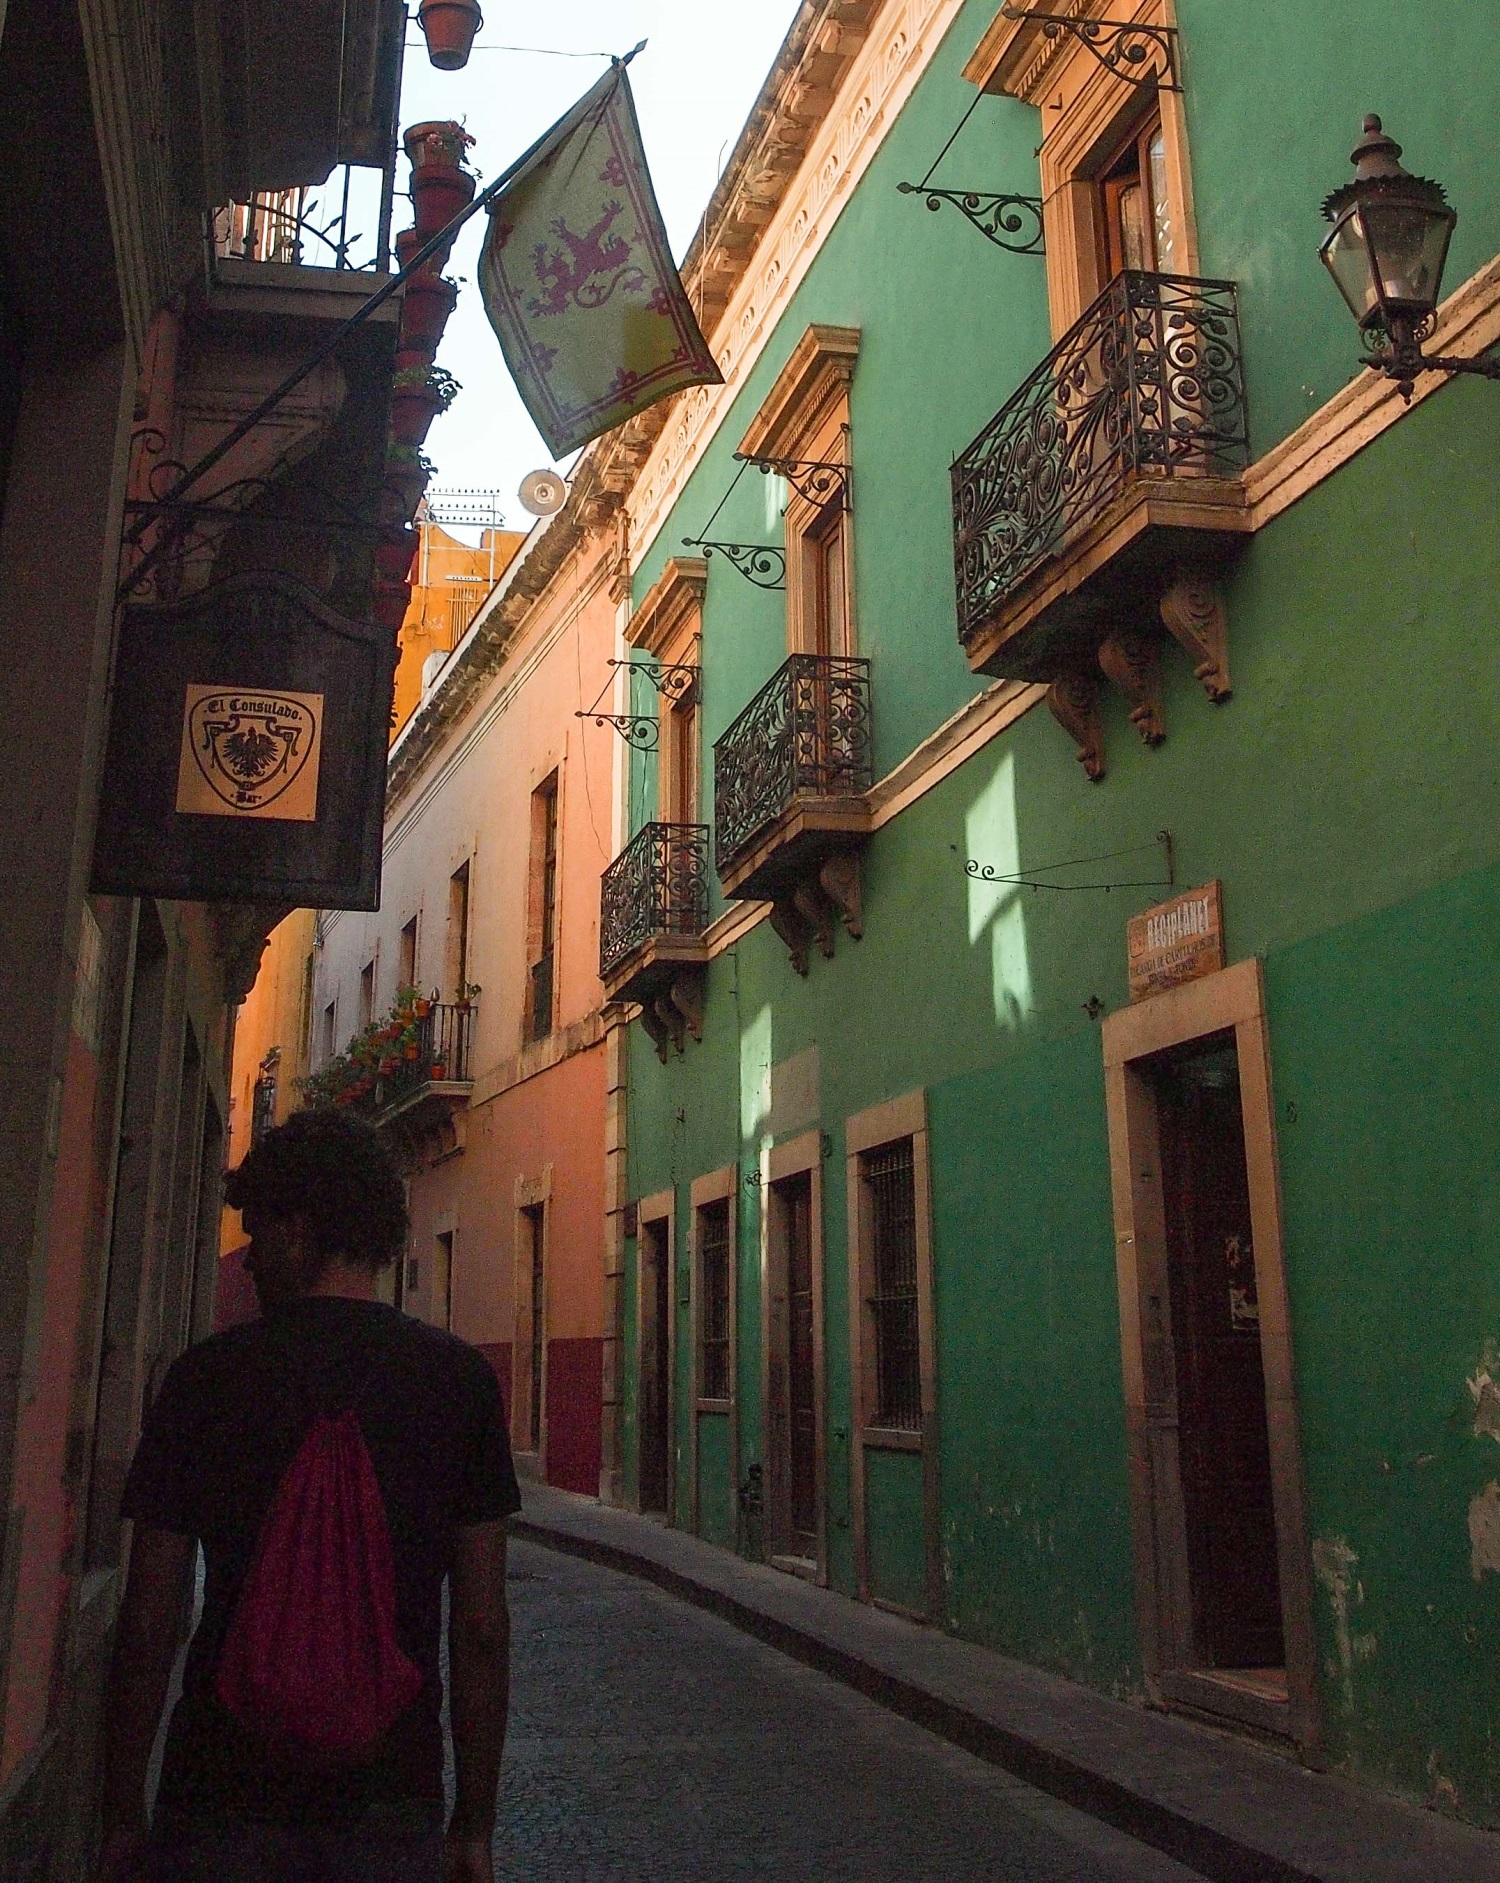 Strolling the streets of Guanajuato